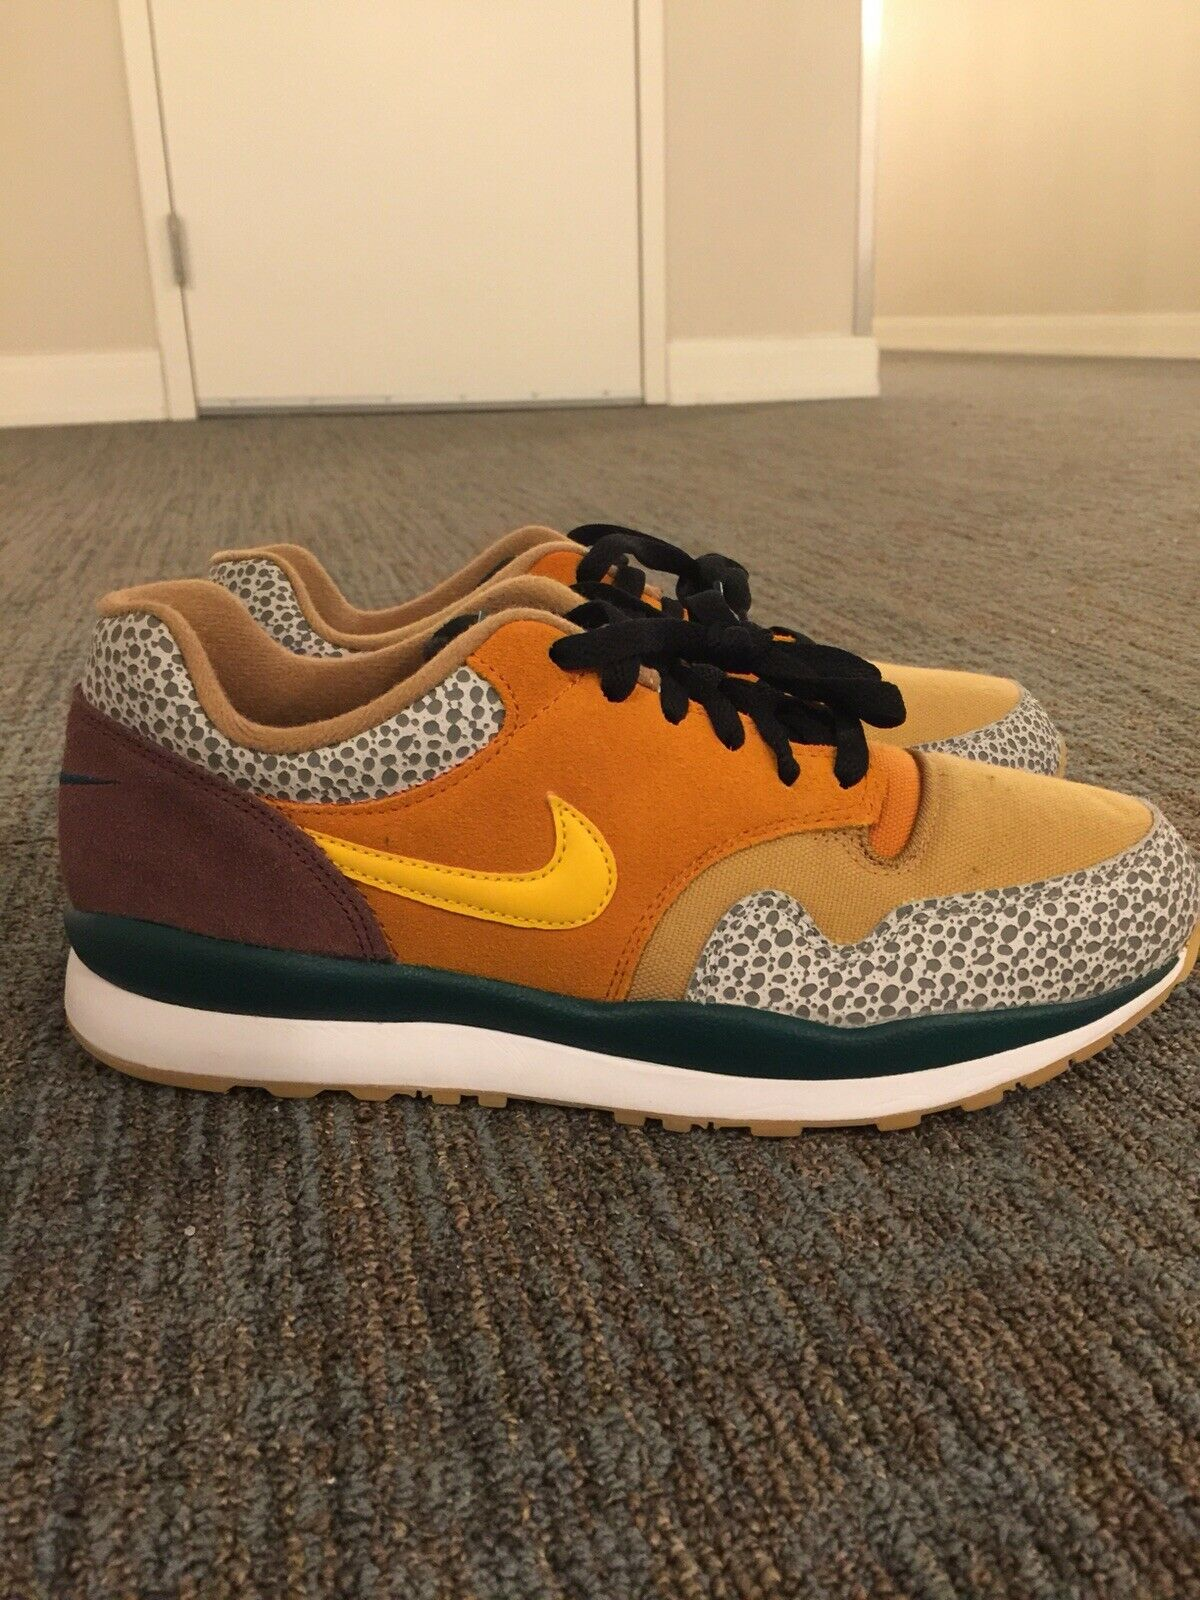 NIKE AIR SAFARI SE x ATMOS  - Men's Size 8.5 Brand New - (AO3298-800)